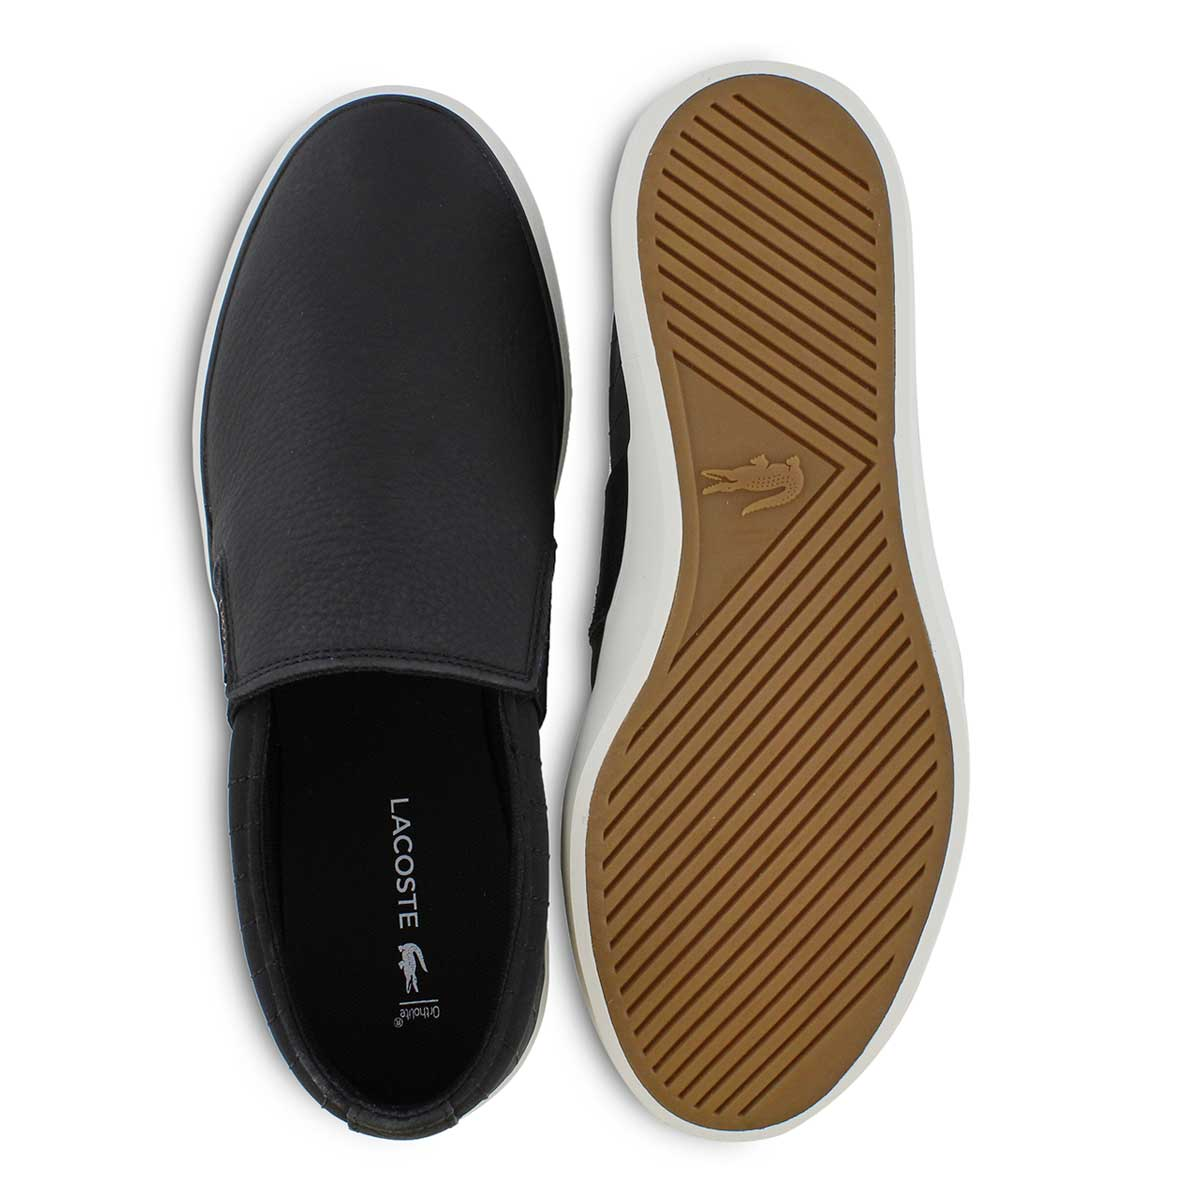 Lds Gazon 2.0 319 2 blk slip on sneaker